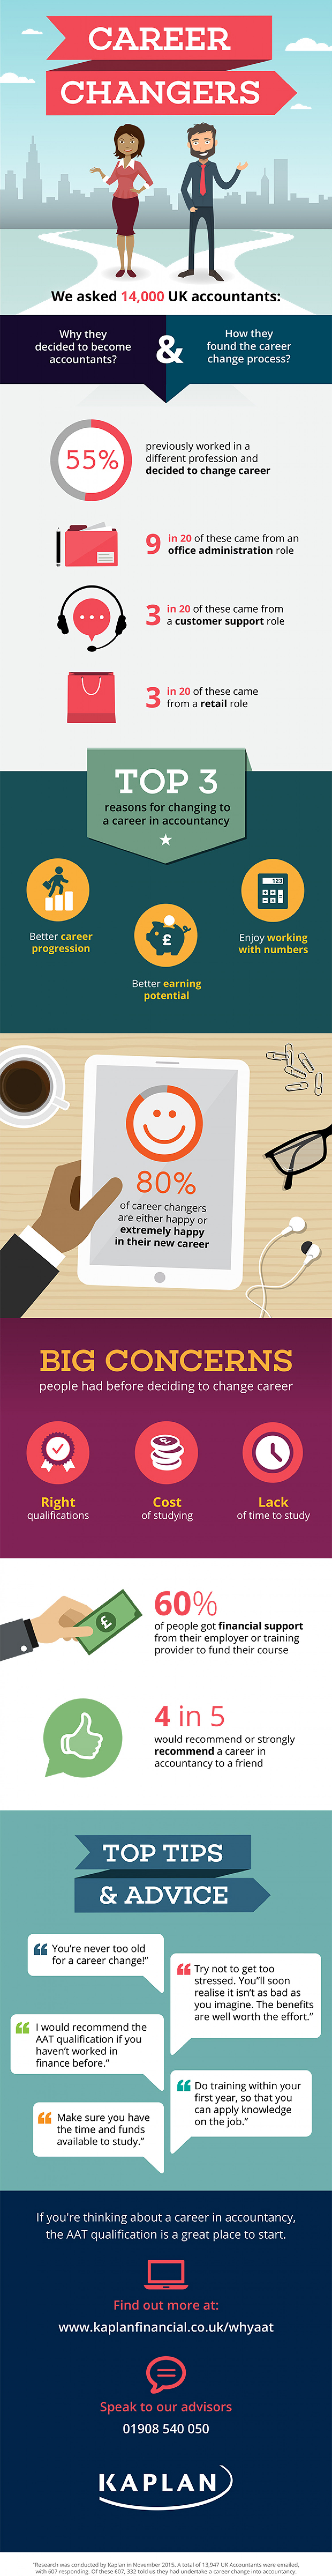 Career Changers Infographic